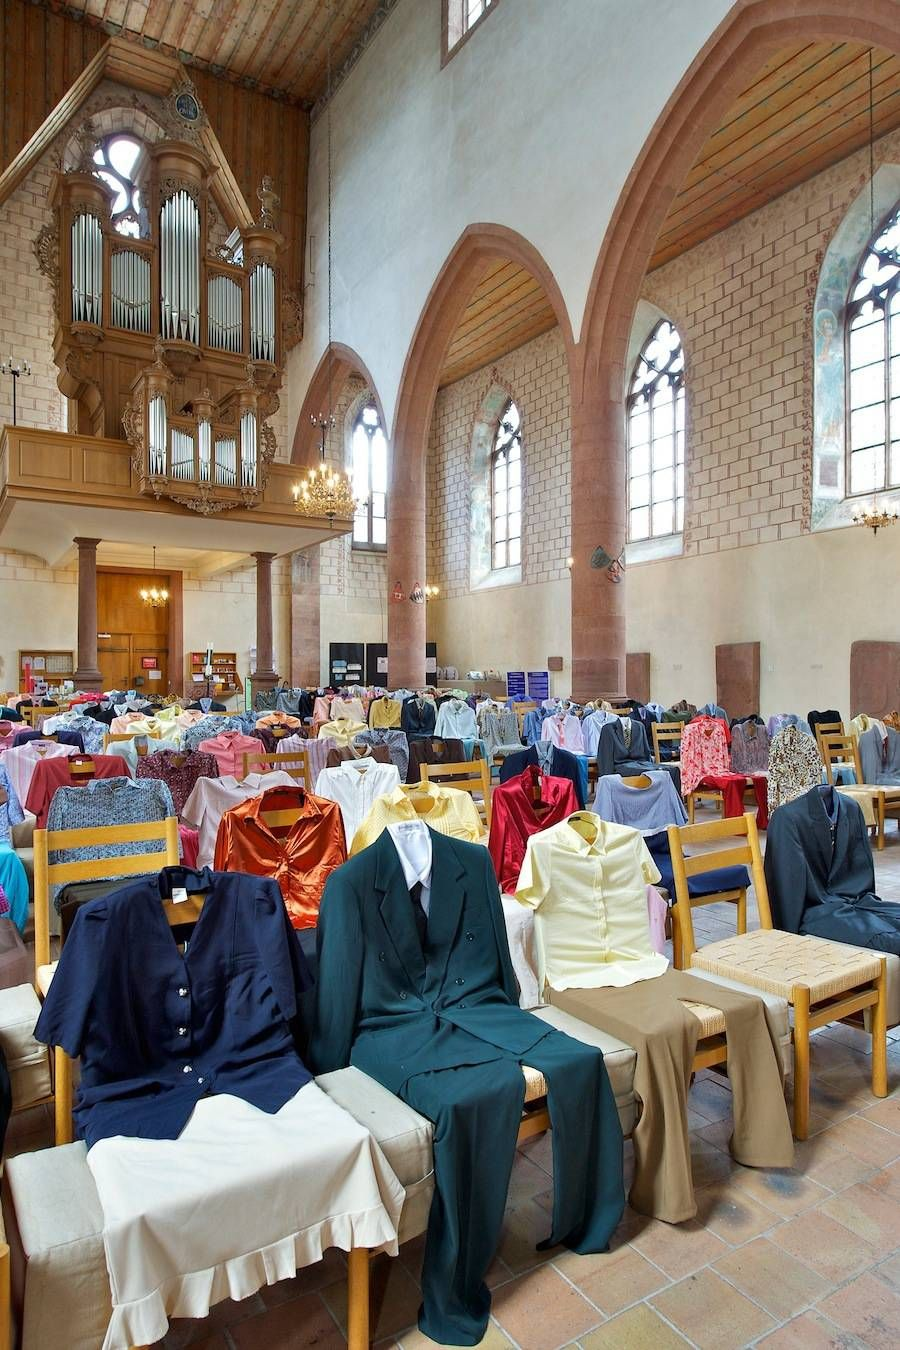 Invisible People Installation In Church - 2019 Art